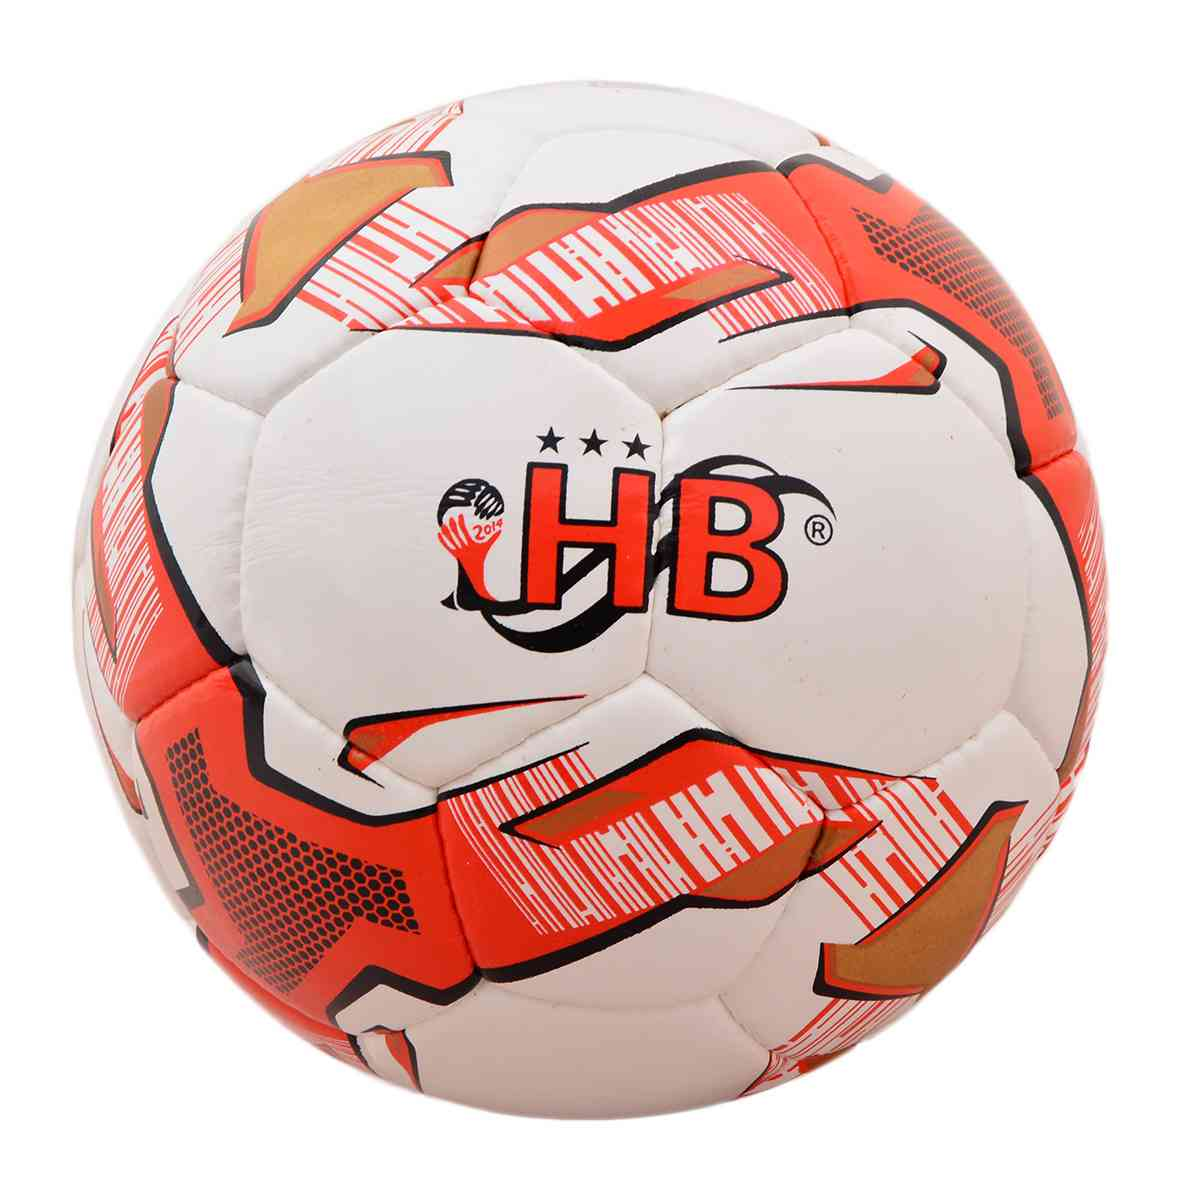 Triple Layered High Quality Cadlay Rexine Size 5 Match Football